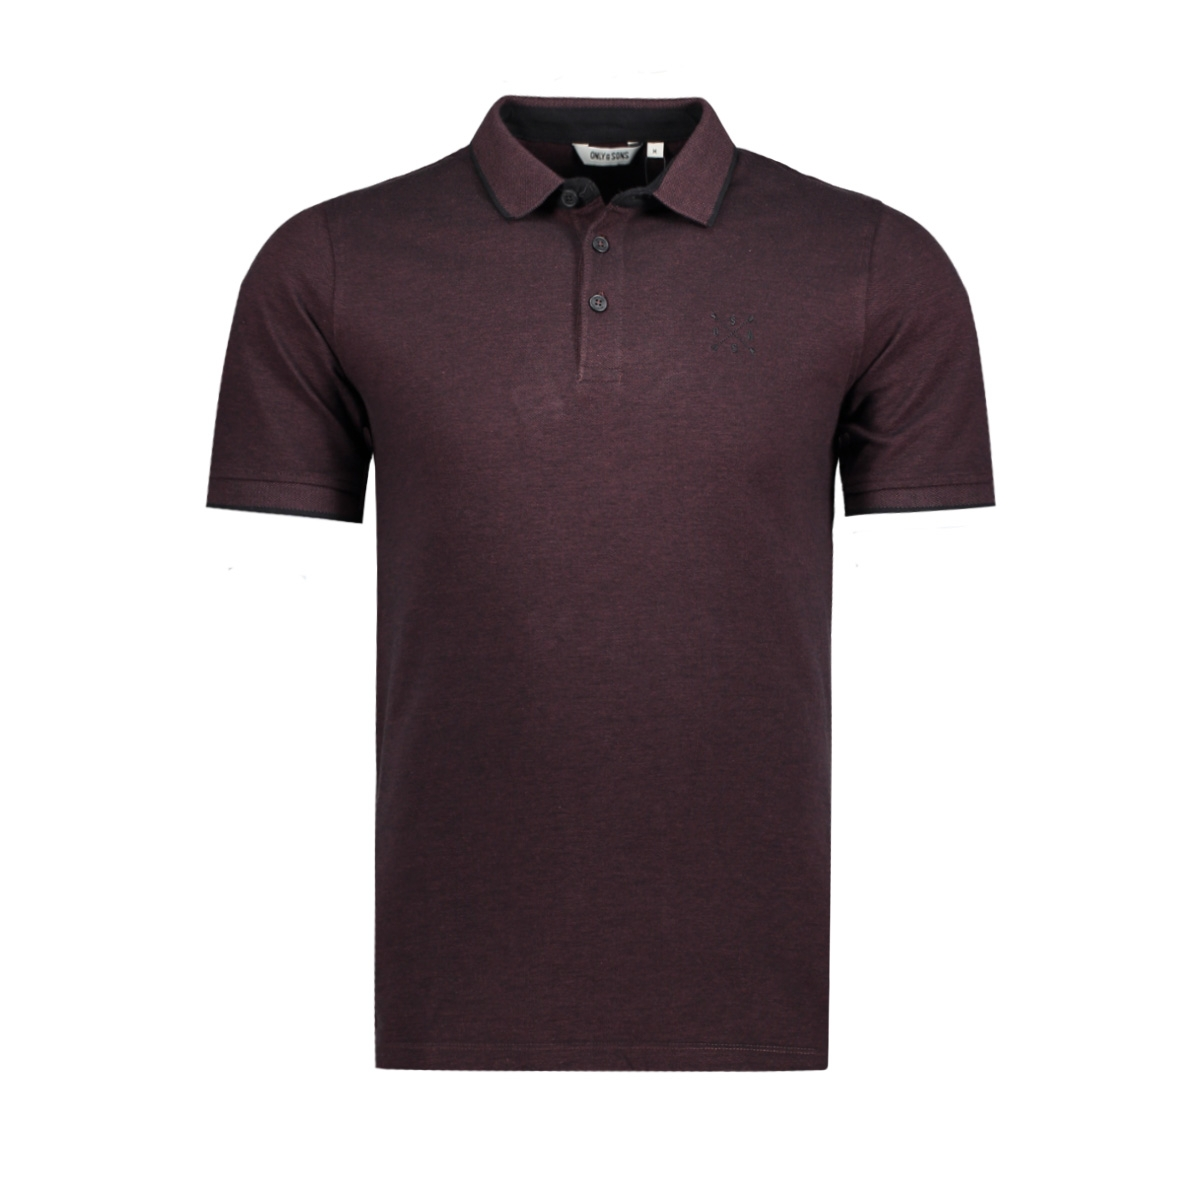 onsstan ss fitted polo tee noos 22006560 only & sons polo fudge